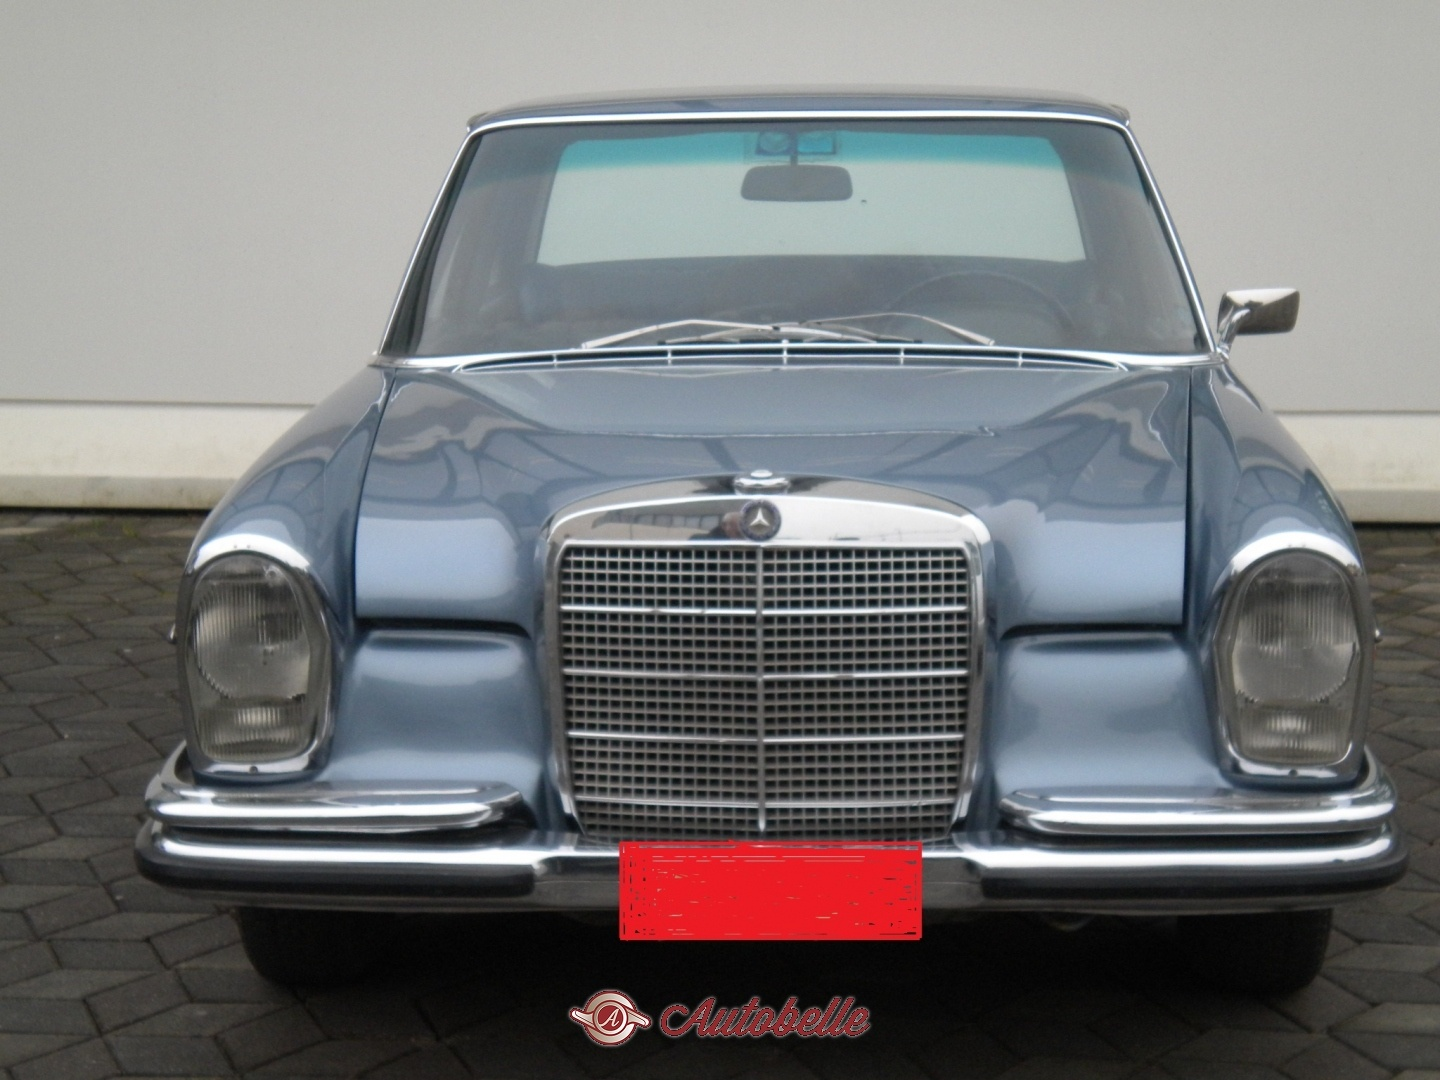 For Sale I SELL MERCEDES 280 SE AUTOMATIC OF 69 PERFECT